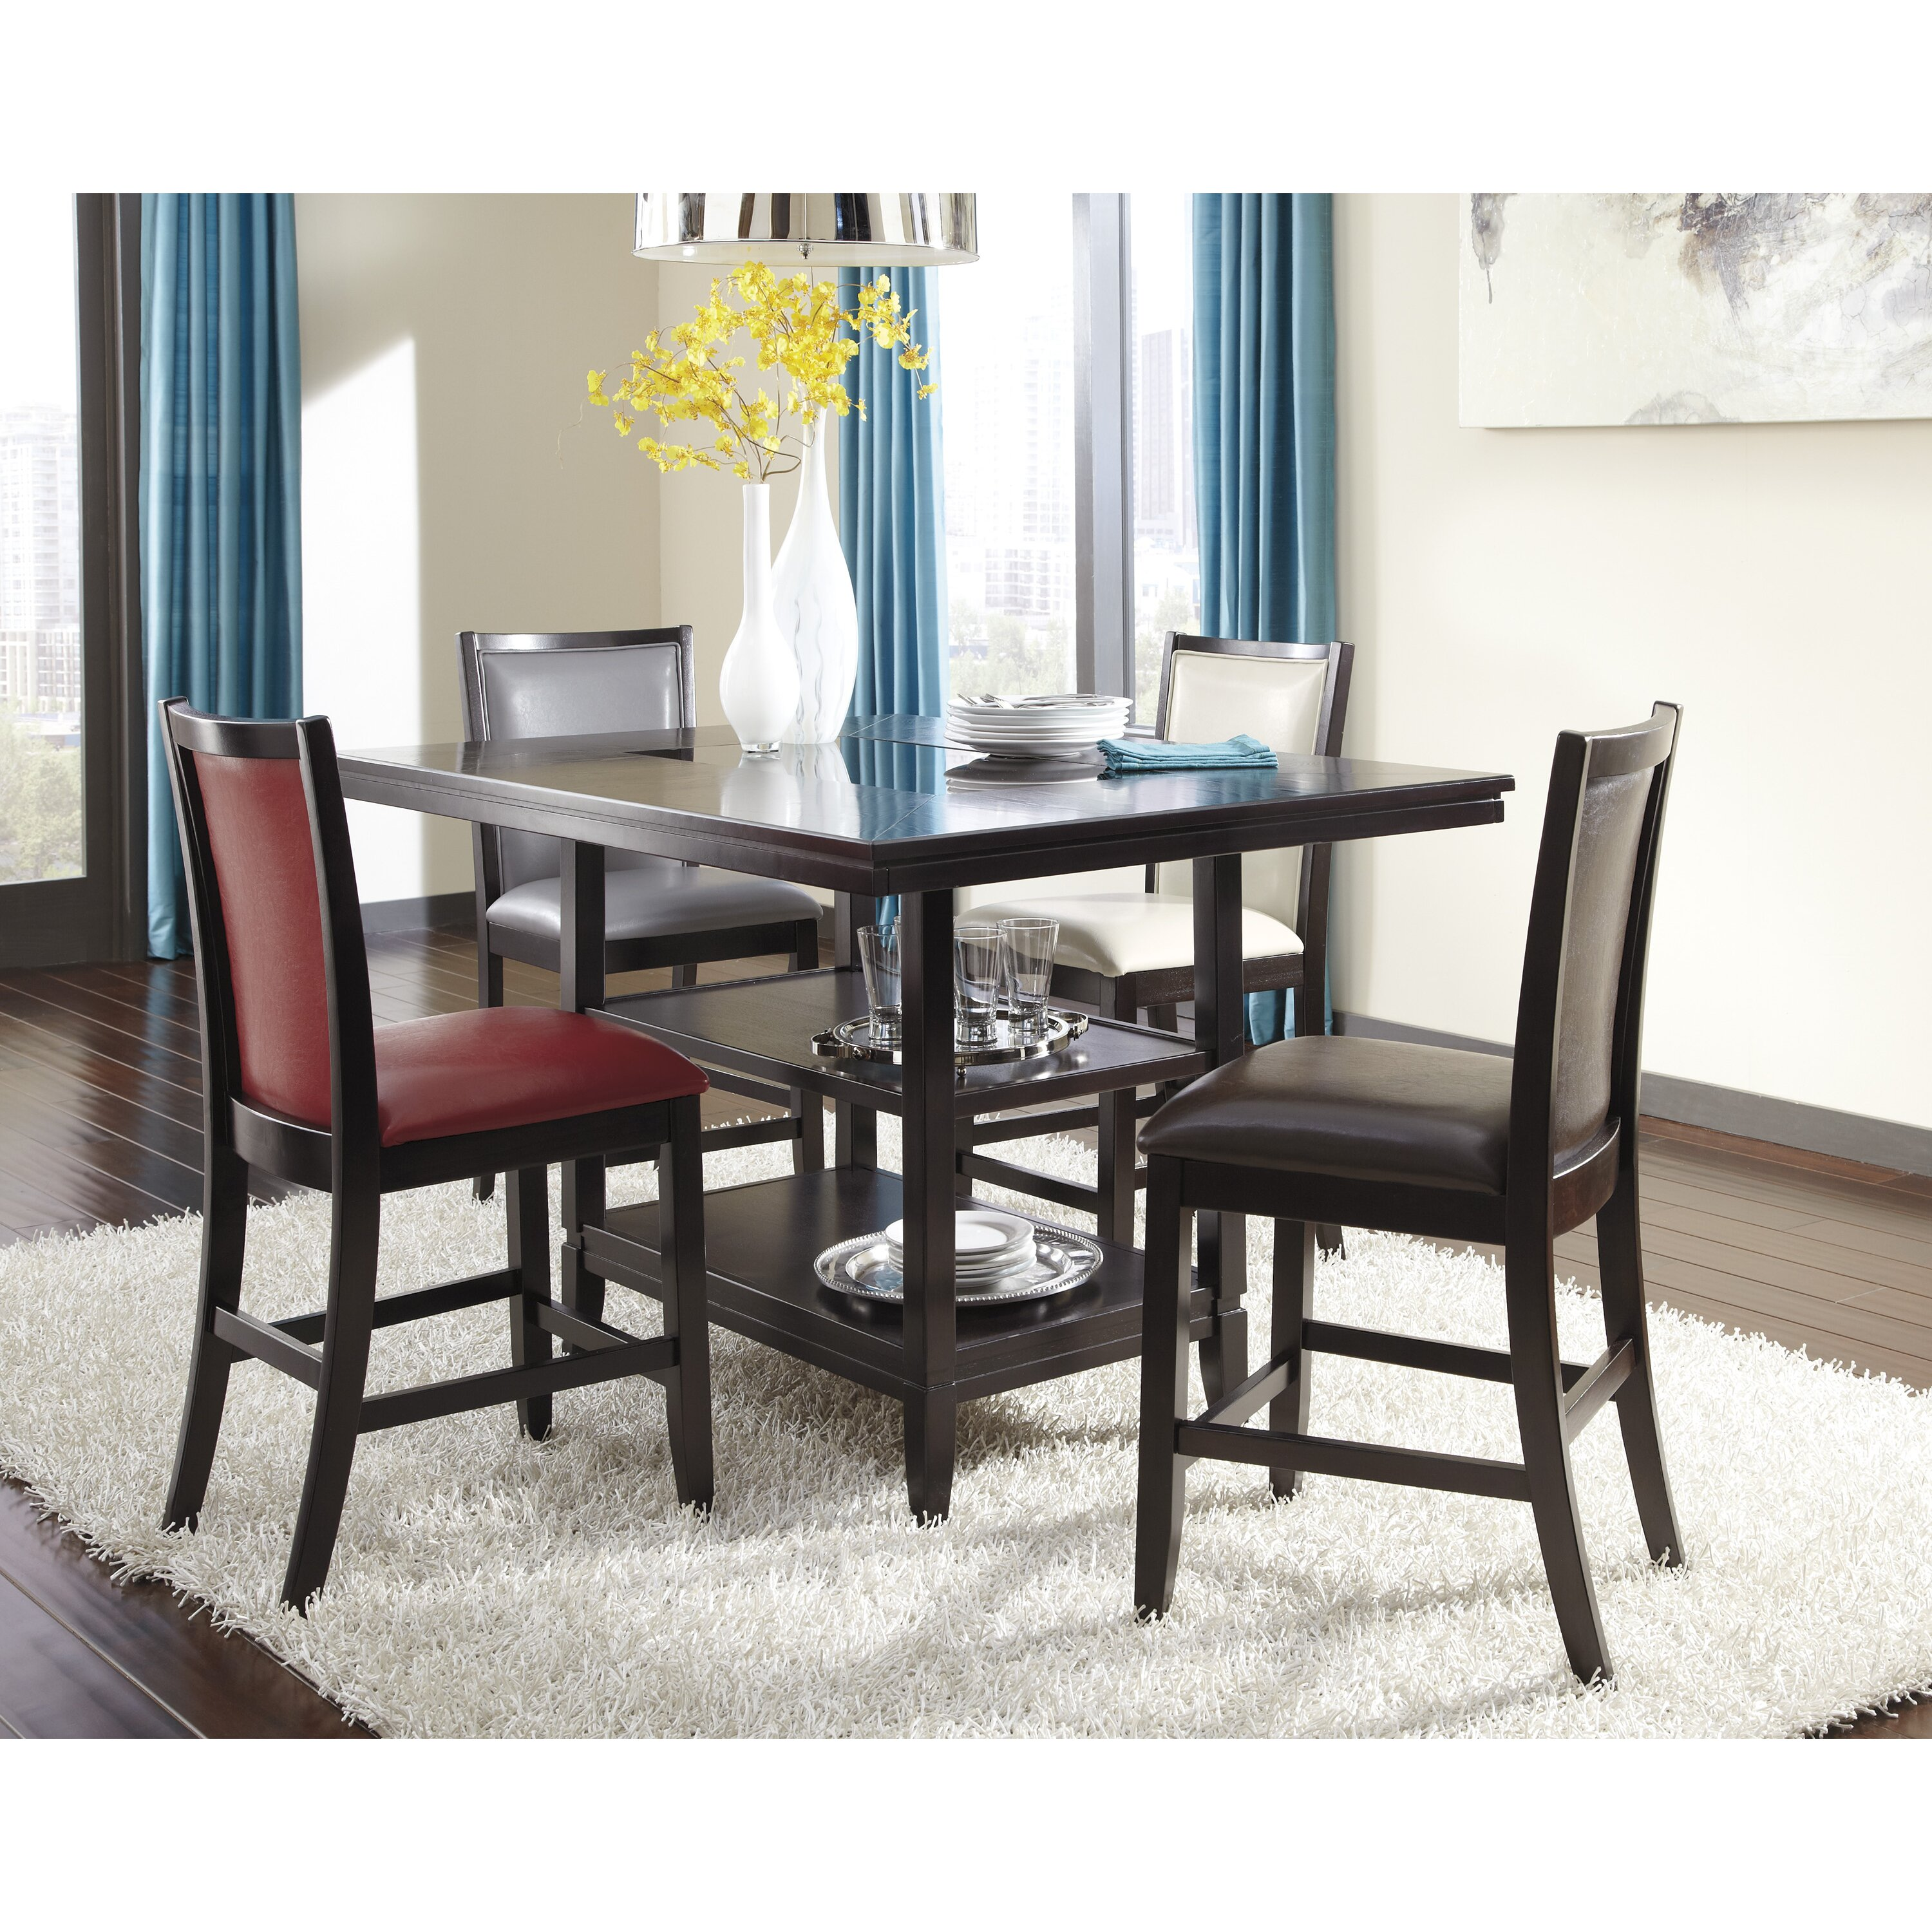 Ashley Furniture Dining Room Table: Signature Design By Ashley Trishelle Counter Height Dining